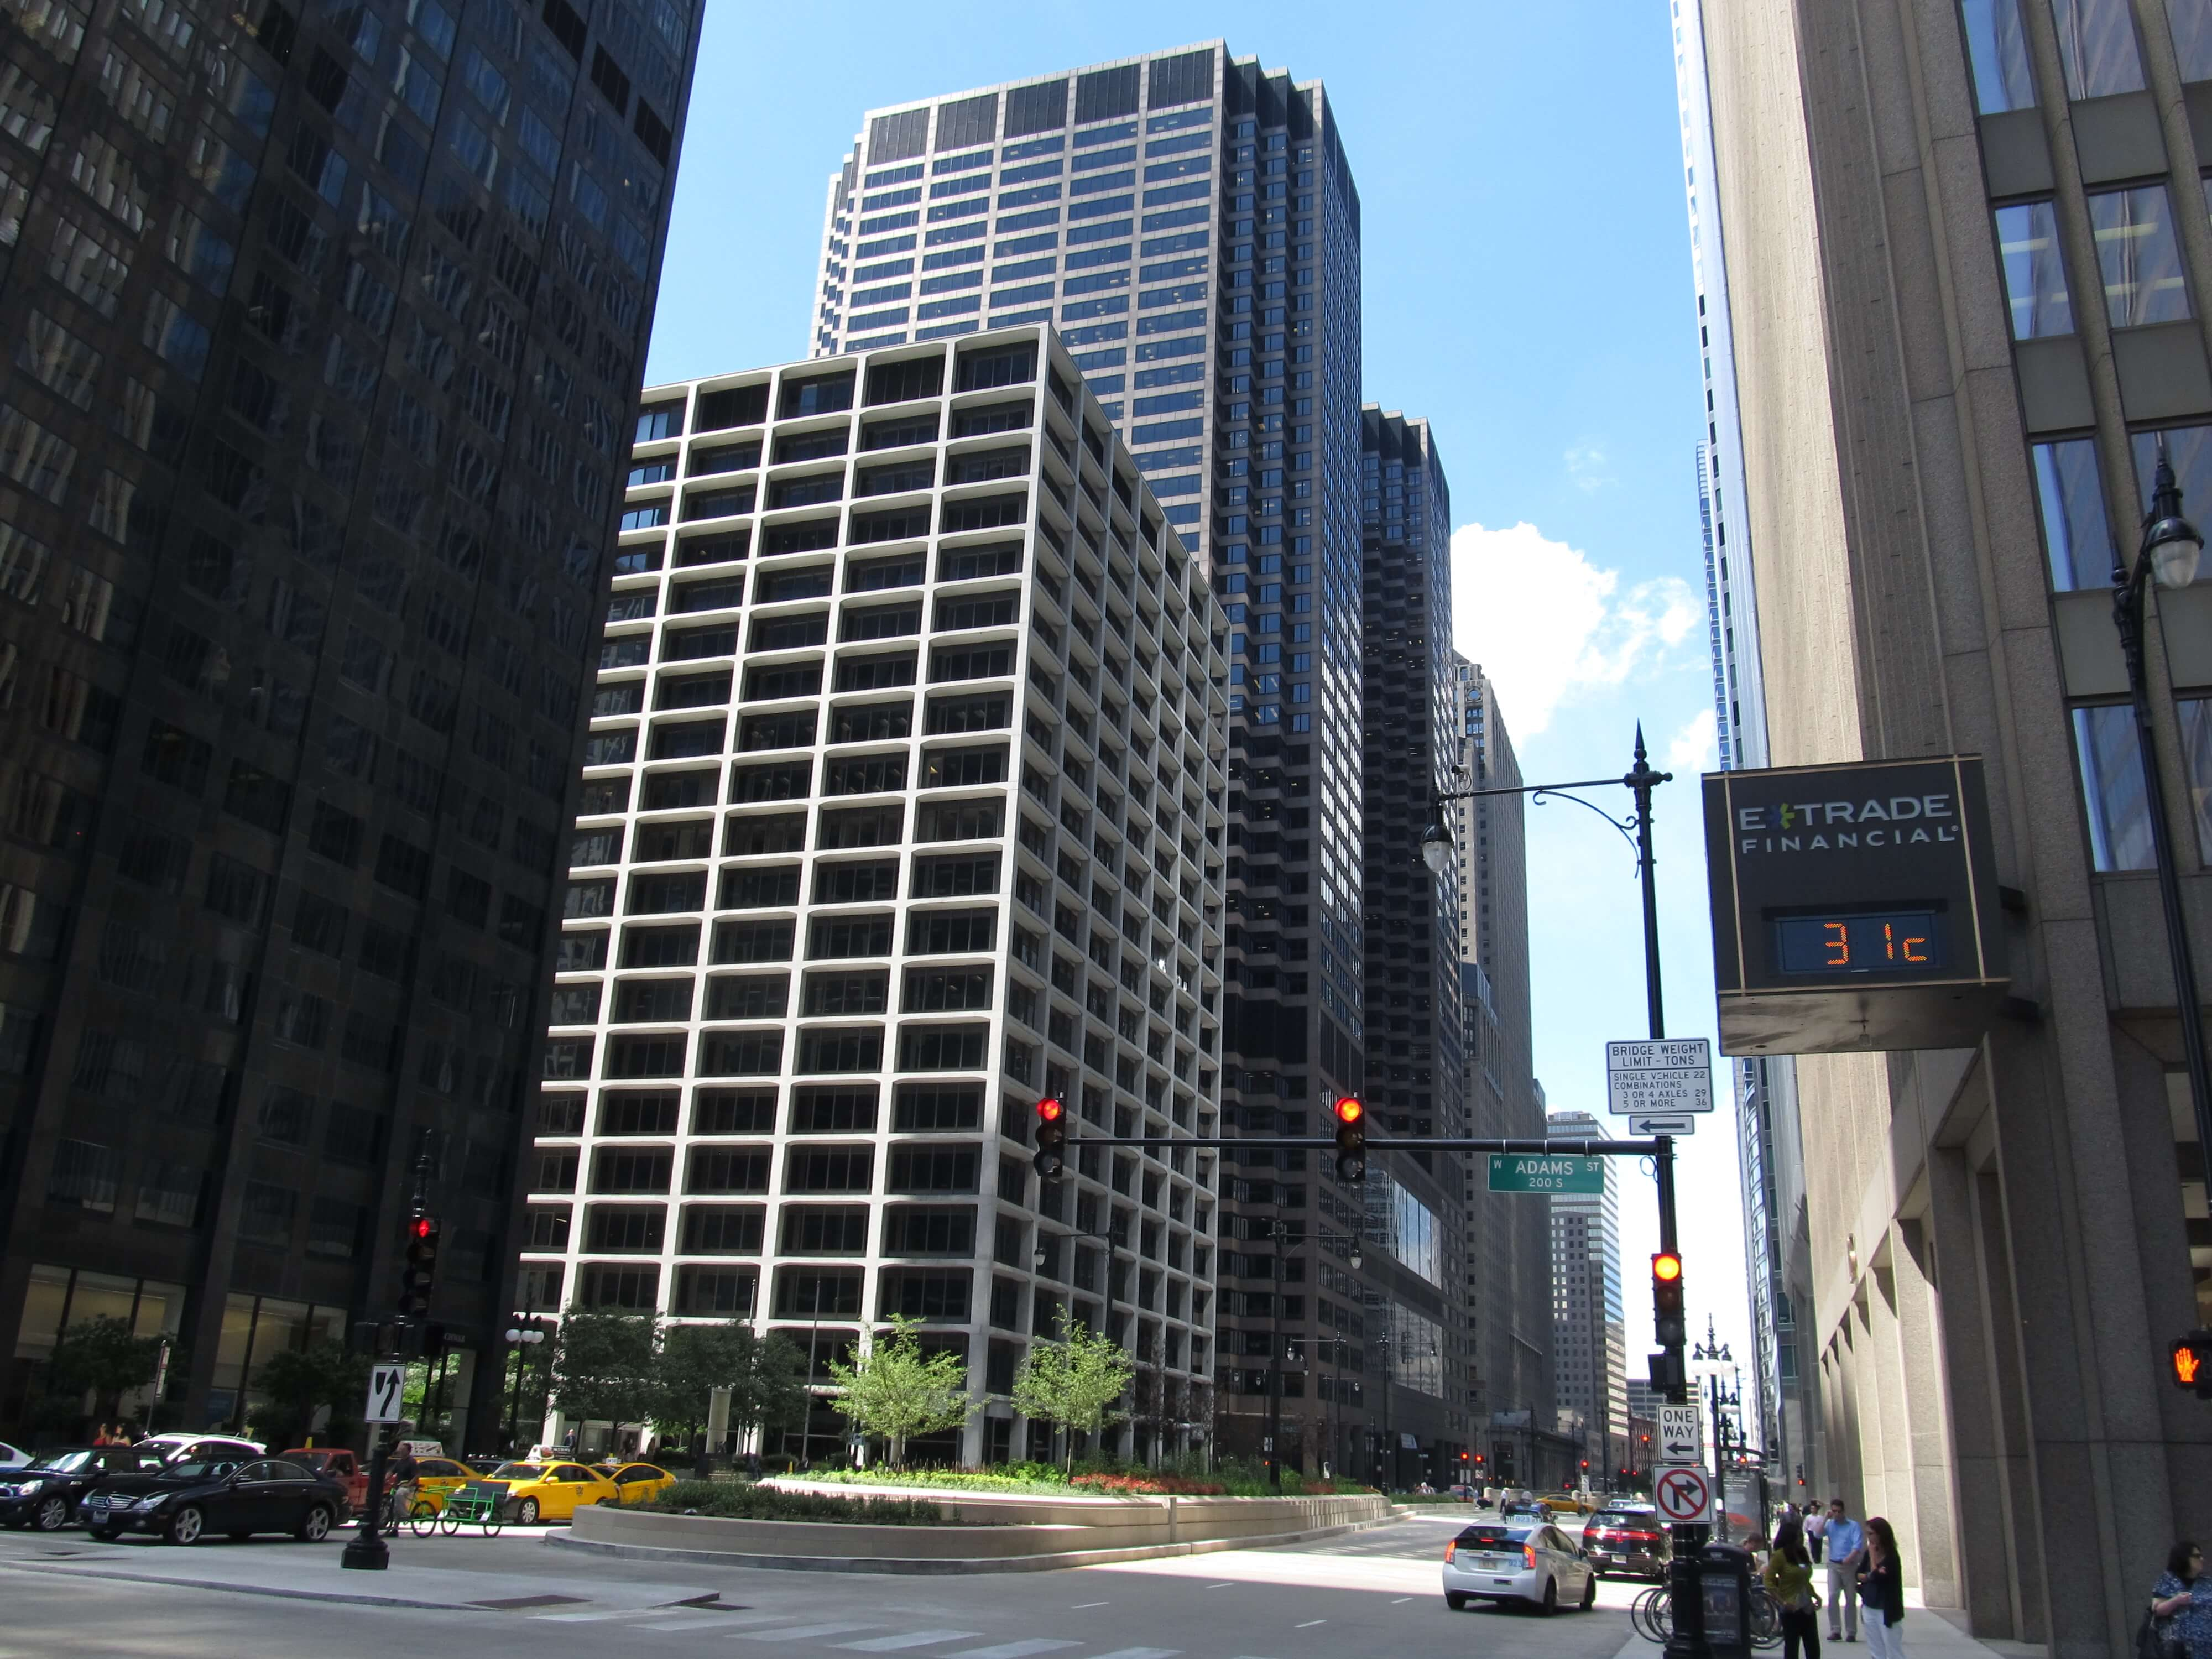 111_South_Wacker_Drive,_Chicago,_Illinois_(9181610544) - chilled beams